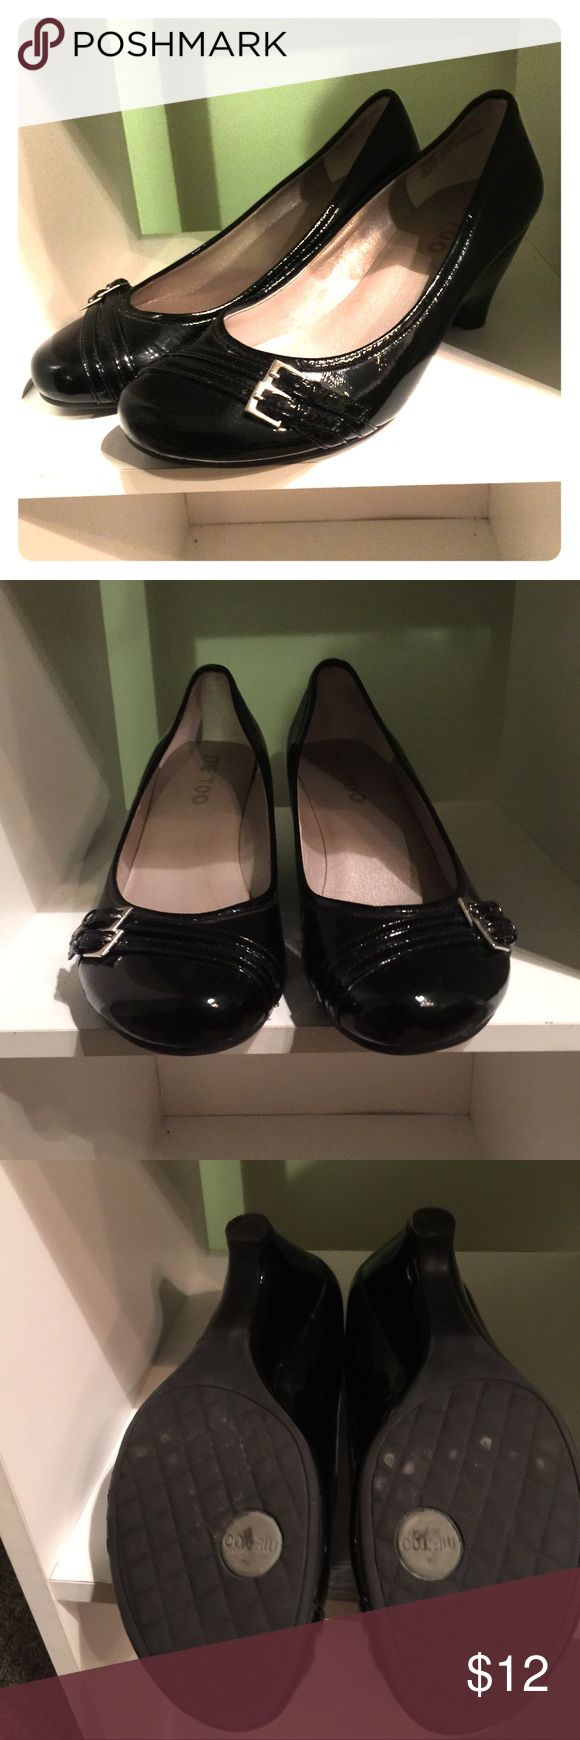 Me Too black patent leather shoe Like new patent leather shoes. Upper balance man made material. Size 6 1/2. me too Shoes Heels